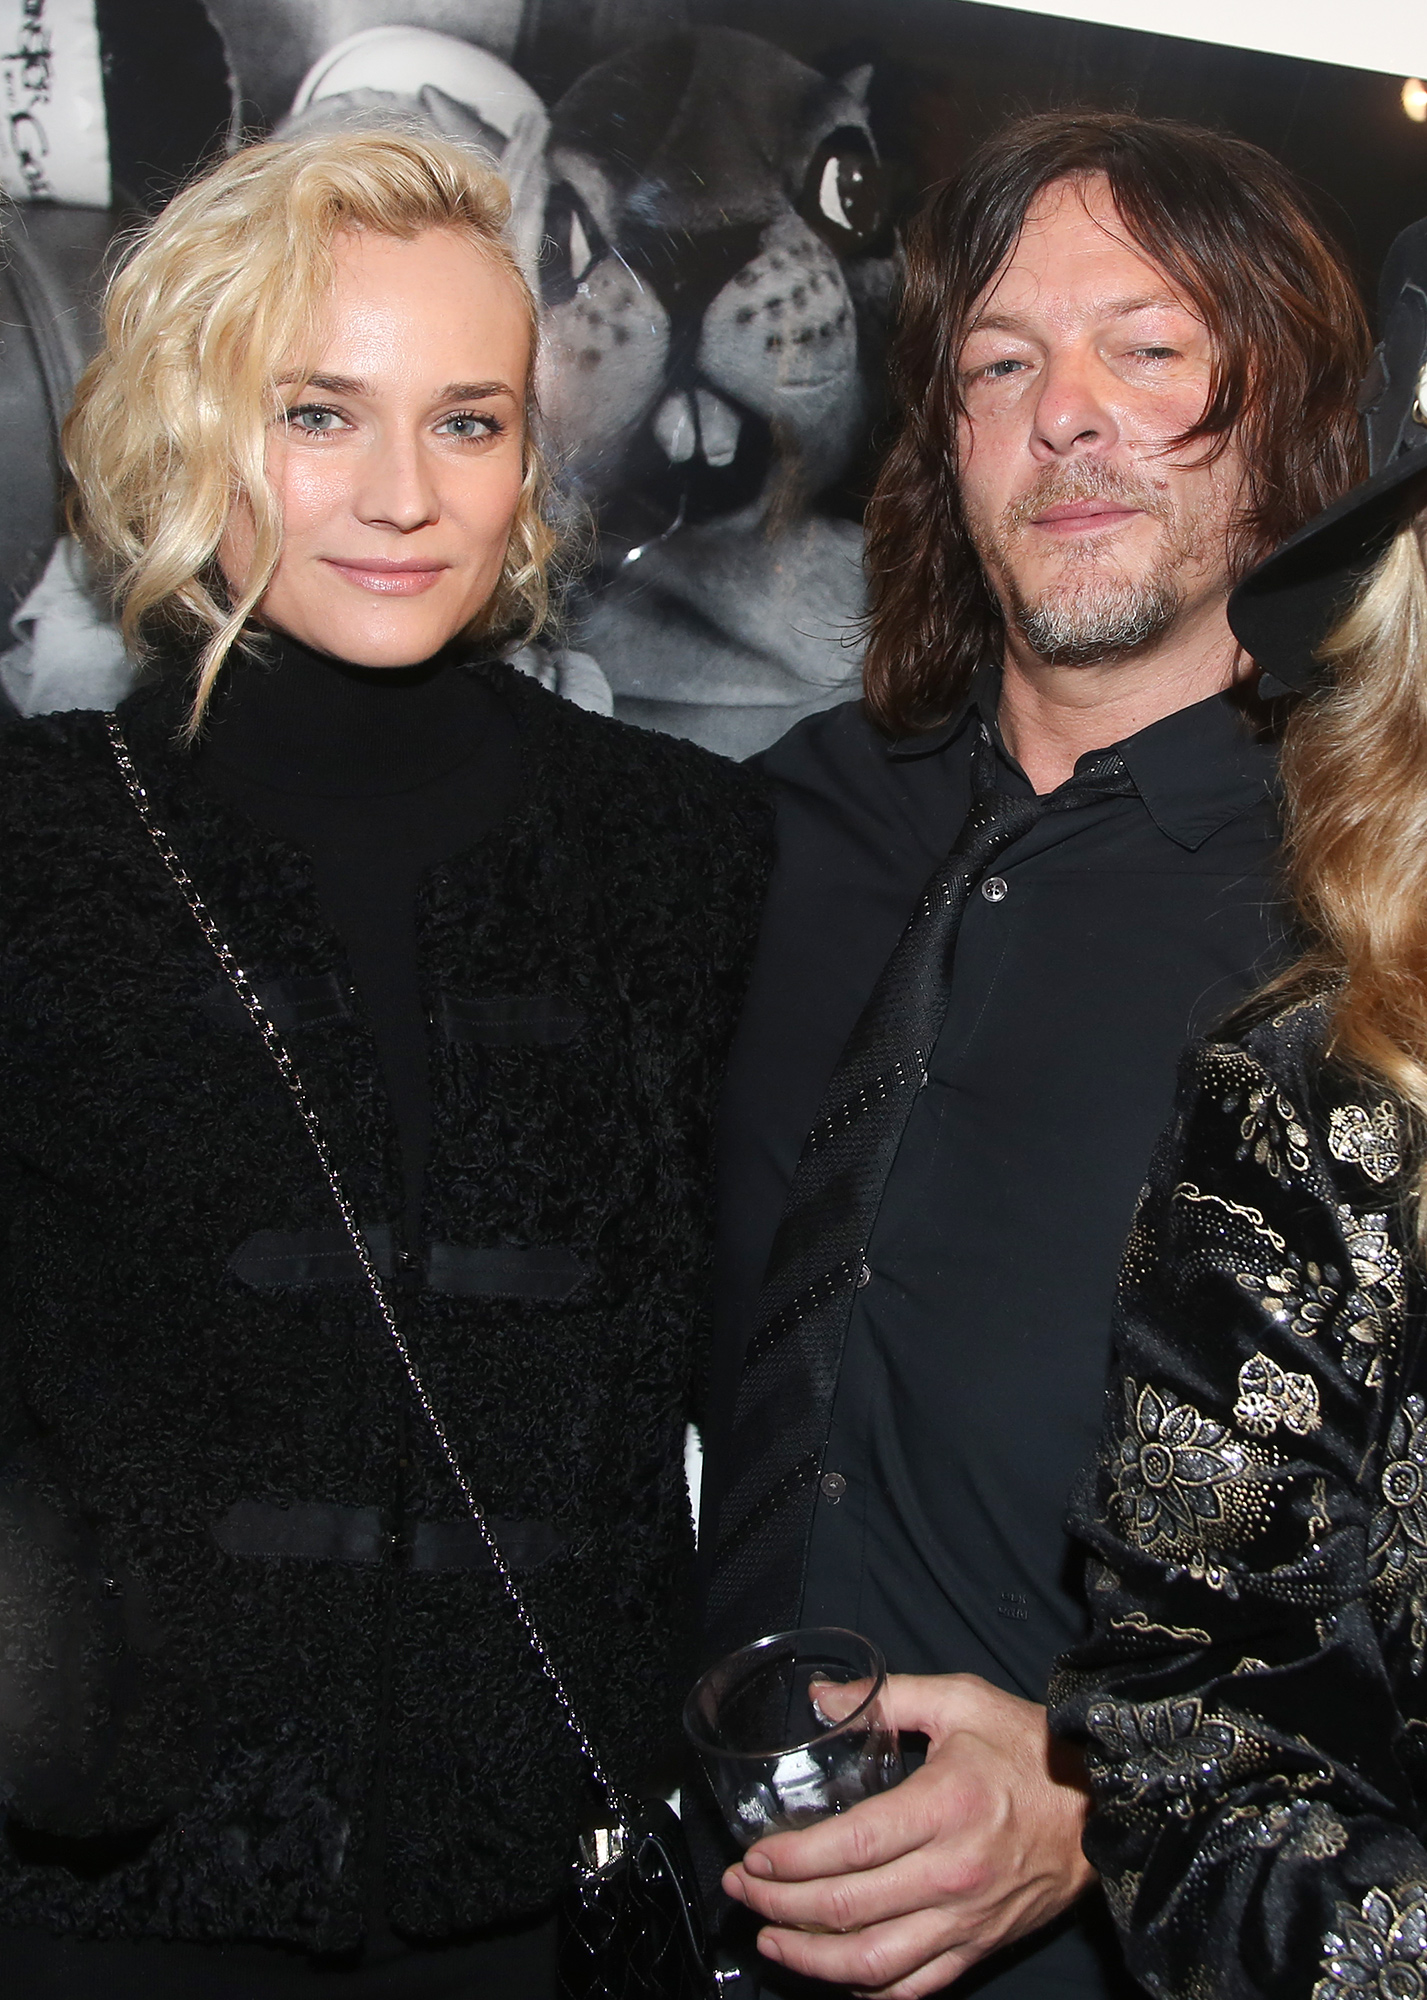 'Norman Reedus' Exhibition at Galerie Hors Champs In Paris